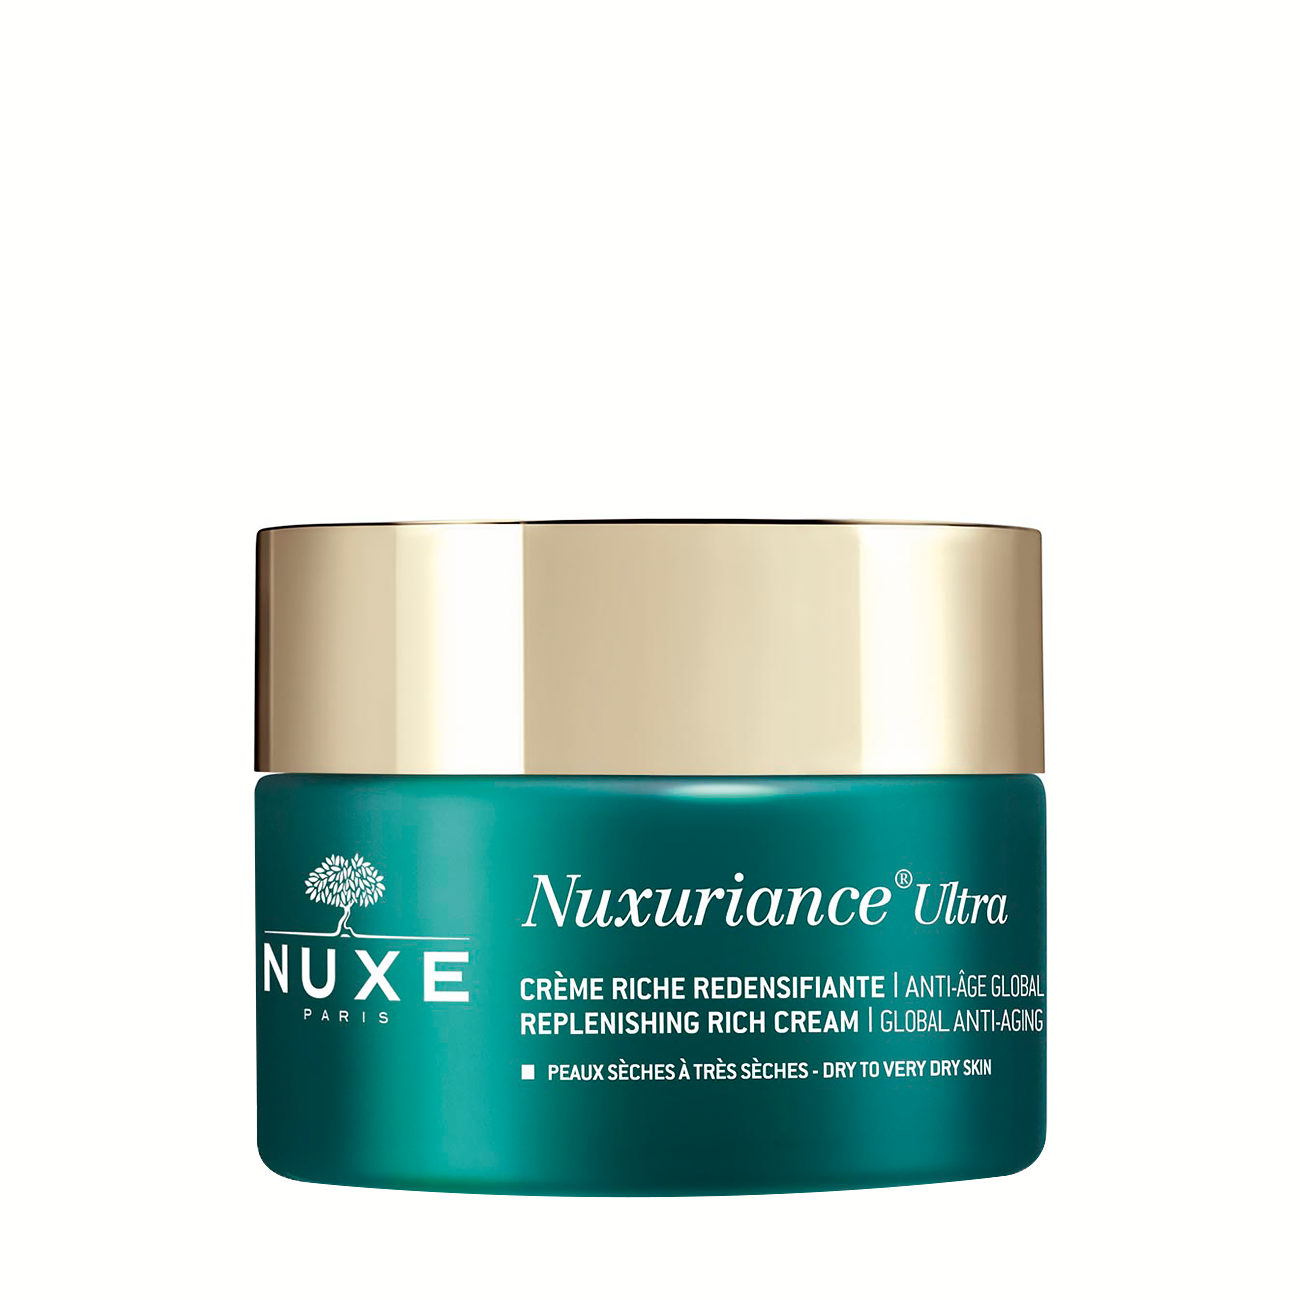 NUXURIANCE ULTRA - REPLENISHING RICH CREAM GLOBAL ANTI-AGING 50ml imagine produs